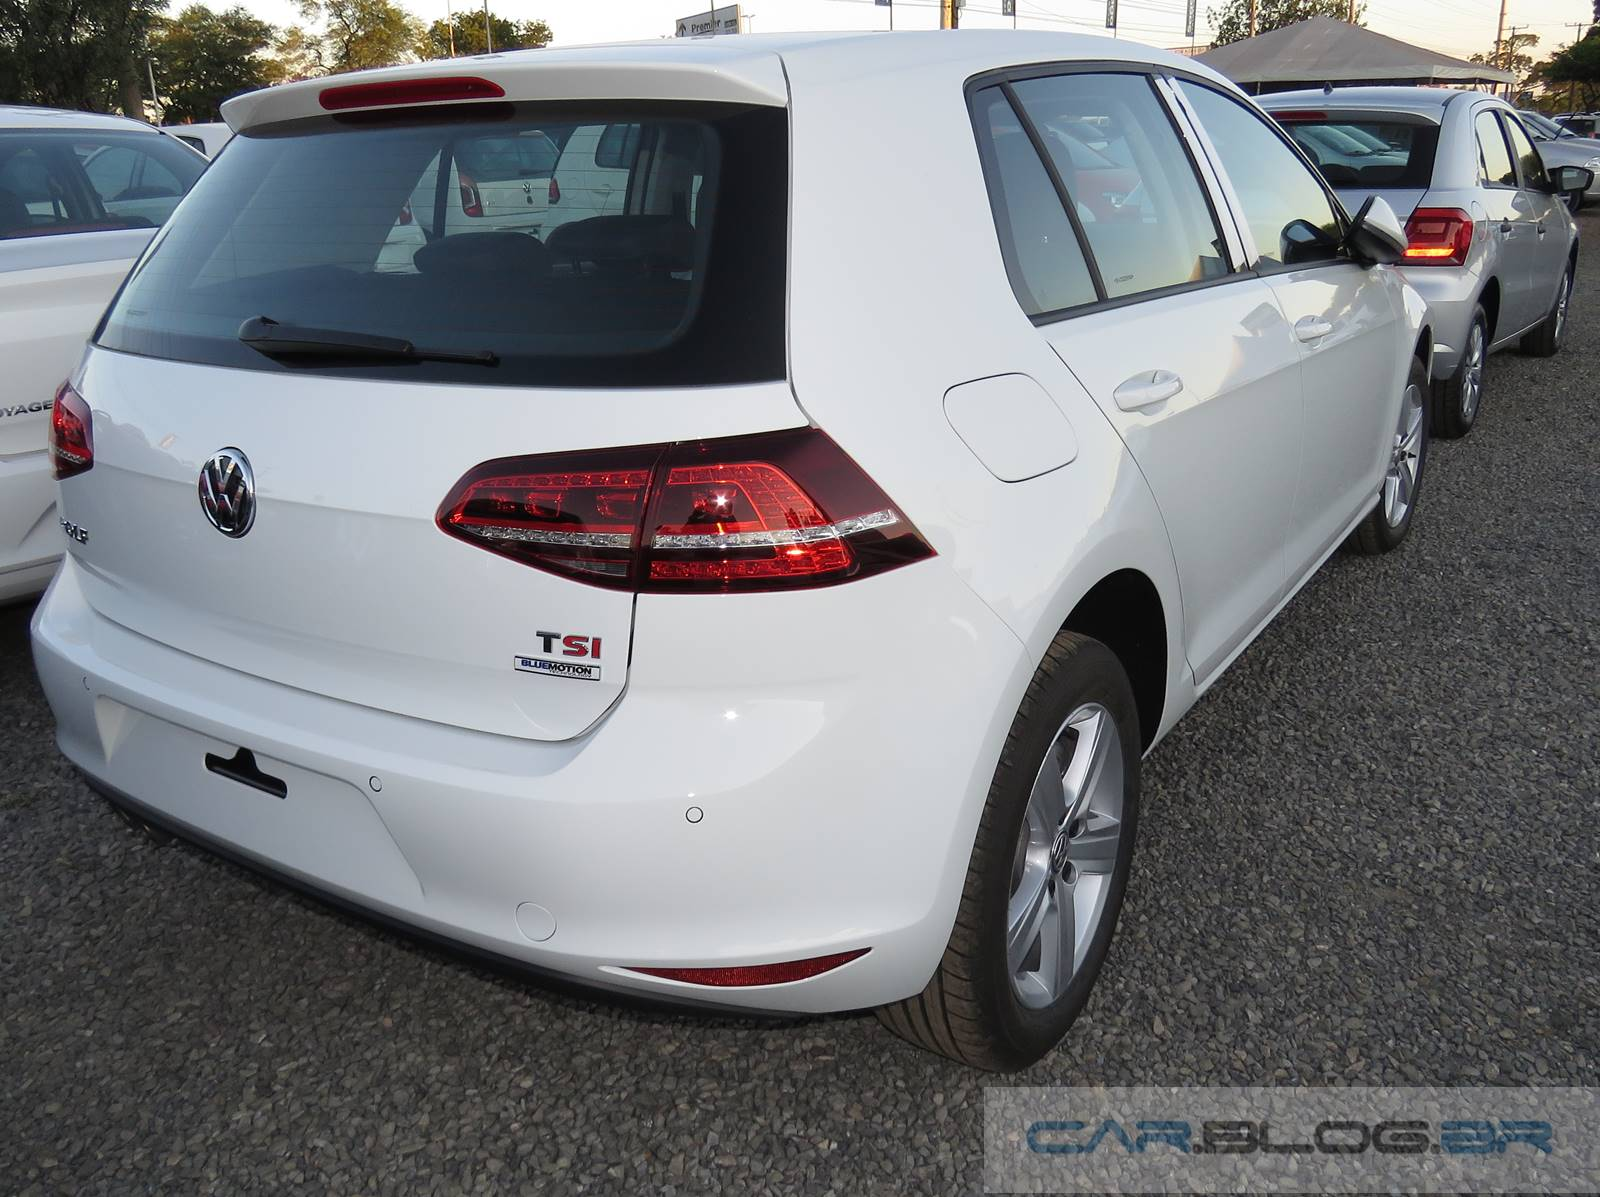 vw golf 1 4 tsi flex nacional fotos consumo desempenho car blog br. Black Bedroom Furniture Sets. Home Design Ideas